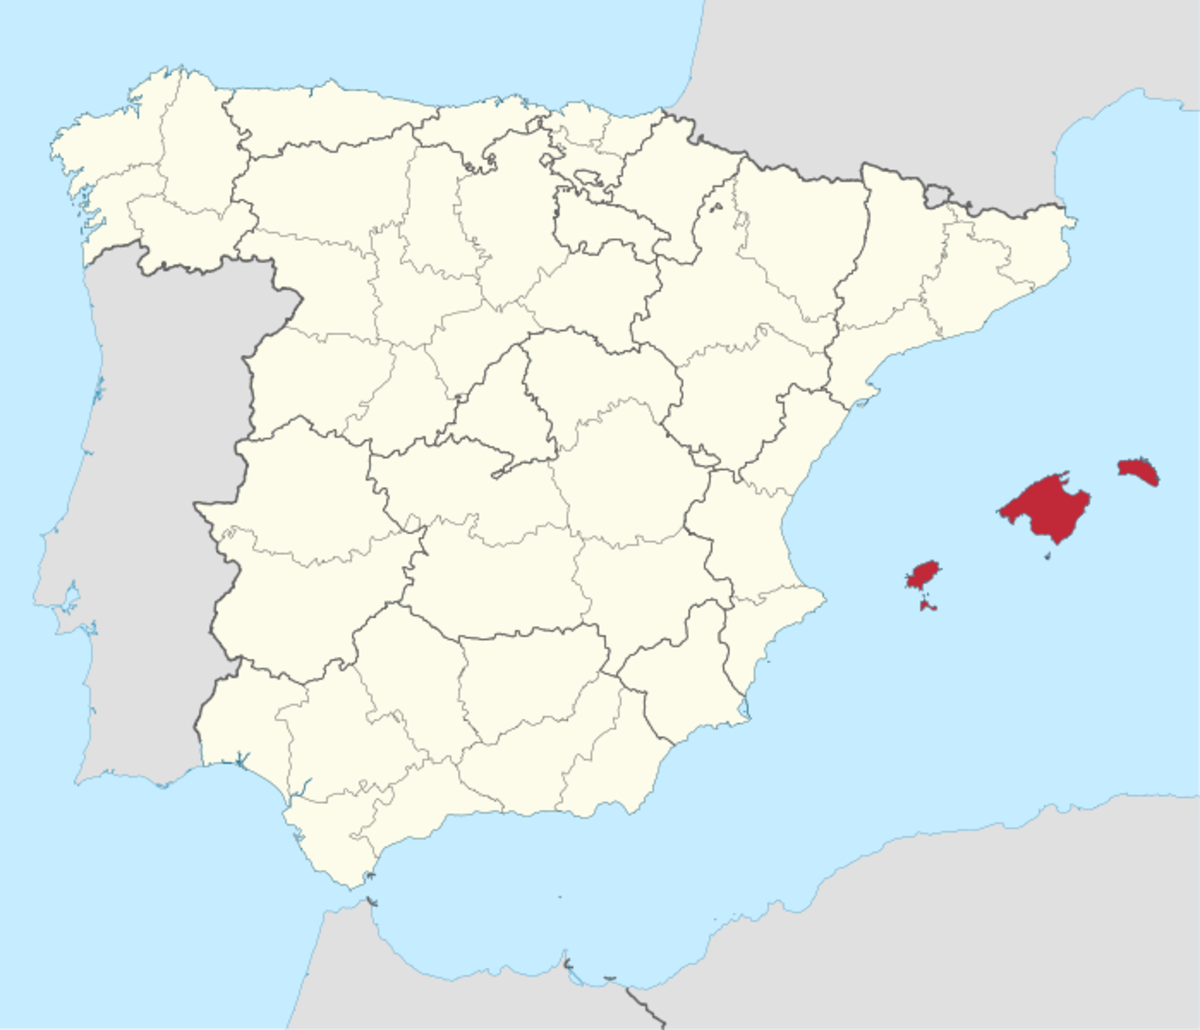 The Balearic Islands of Spain off the eastern coast of the Iberian Peninsula in the western Mediterranean Sea.